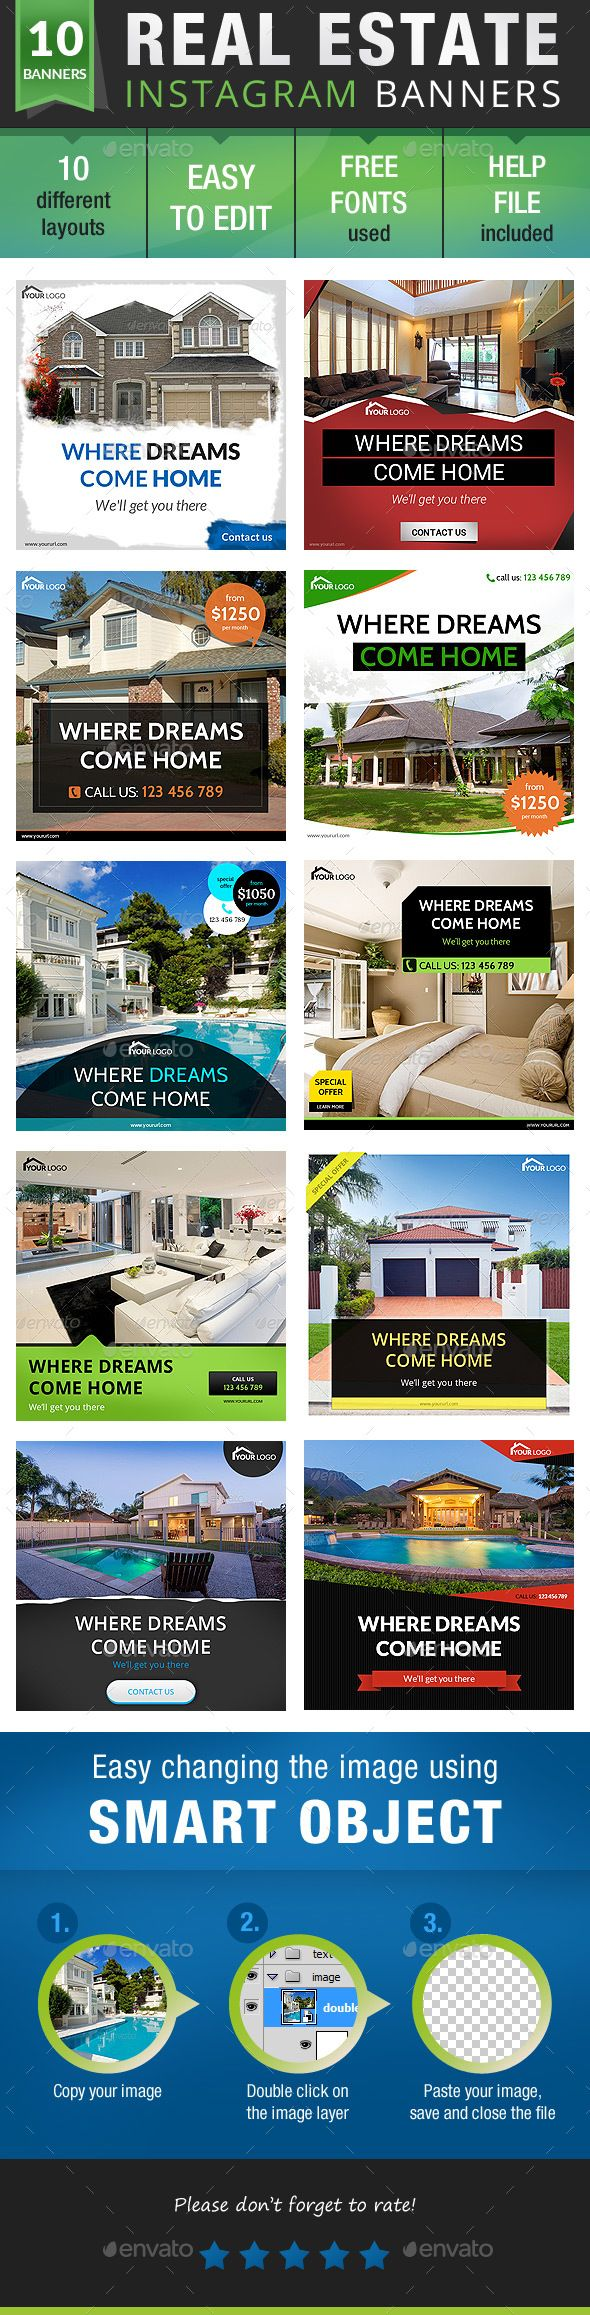 Real Estate Instagram Design Template - Banners & Ads Web Elements Design Template PSD. Download here: https://graphicriver.net/item/real-estate-instagram-bundle/19100629?ref=yinkira